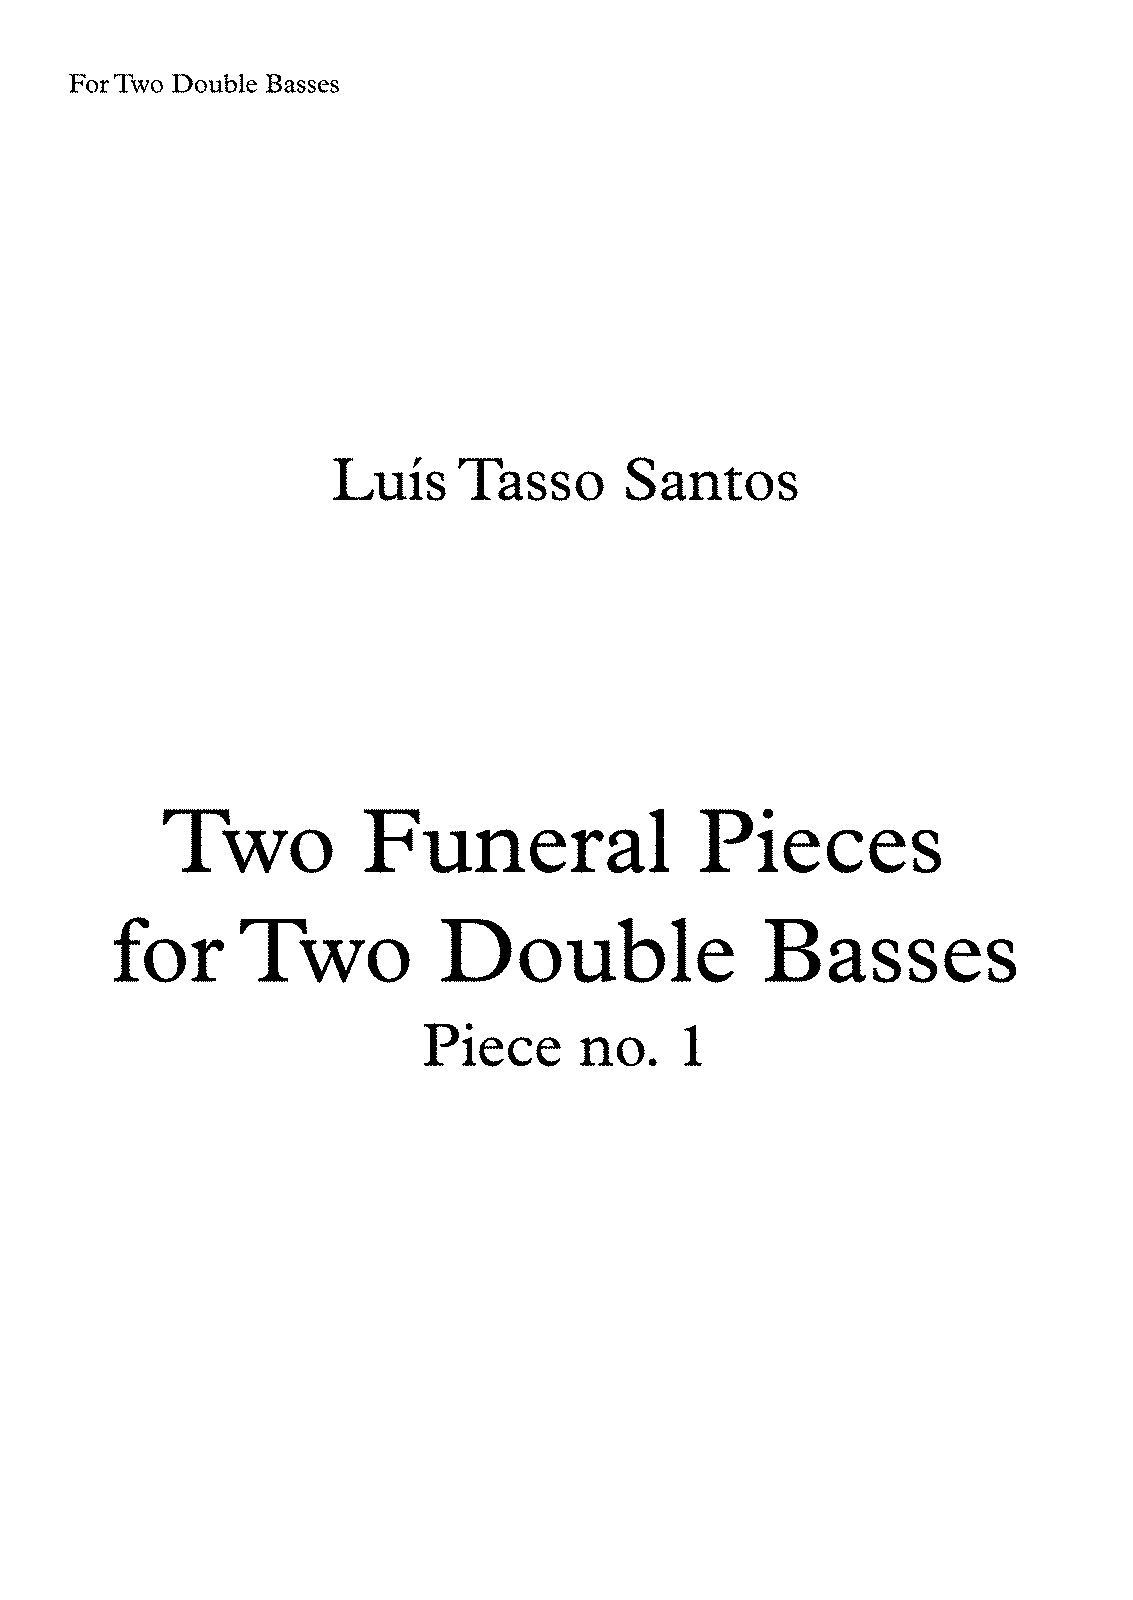 PMLP426968-Funeral Chant for Two Basses no 1 - Full Score.pdf